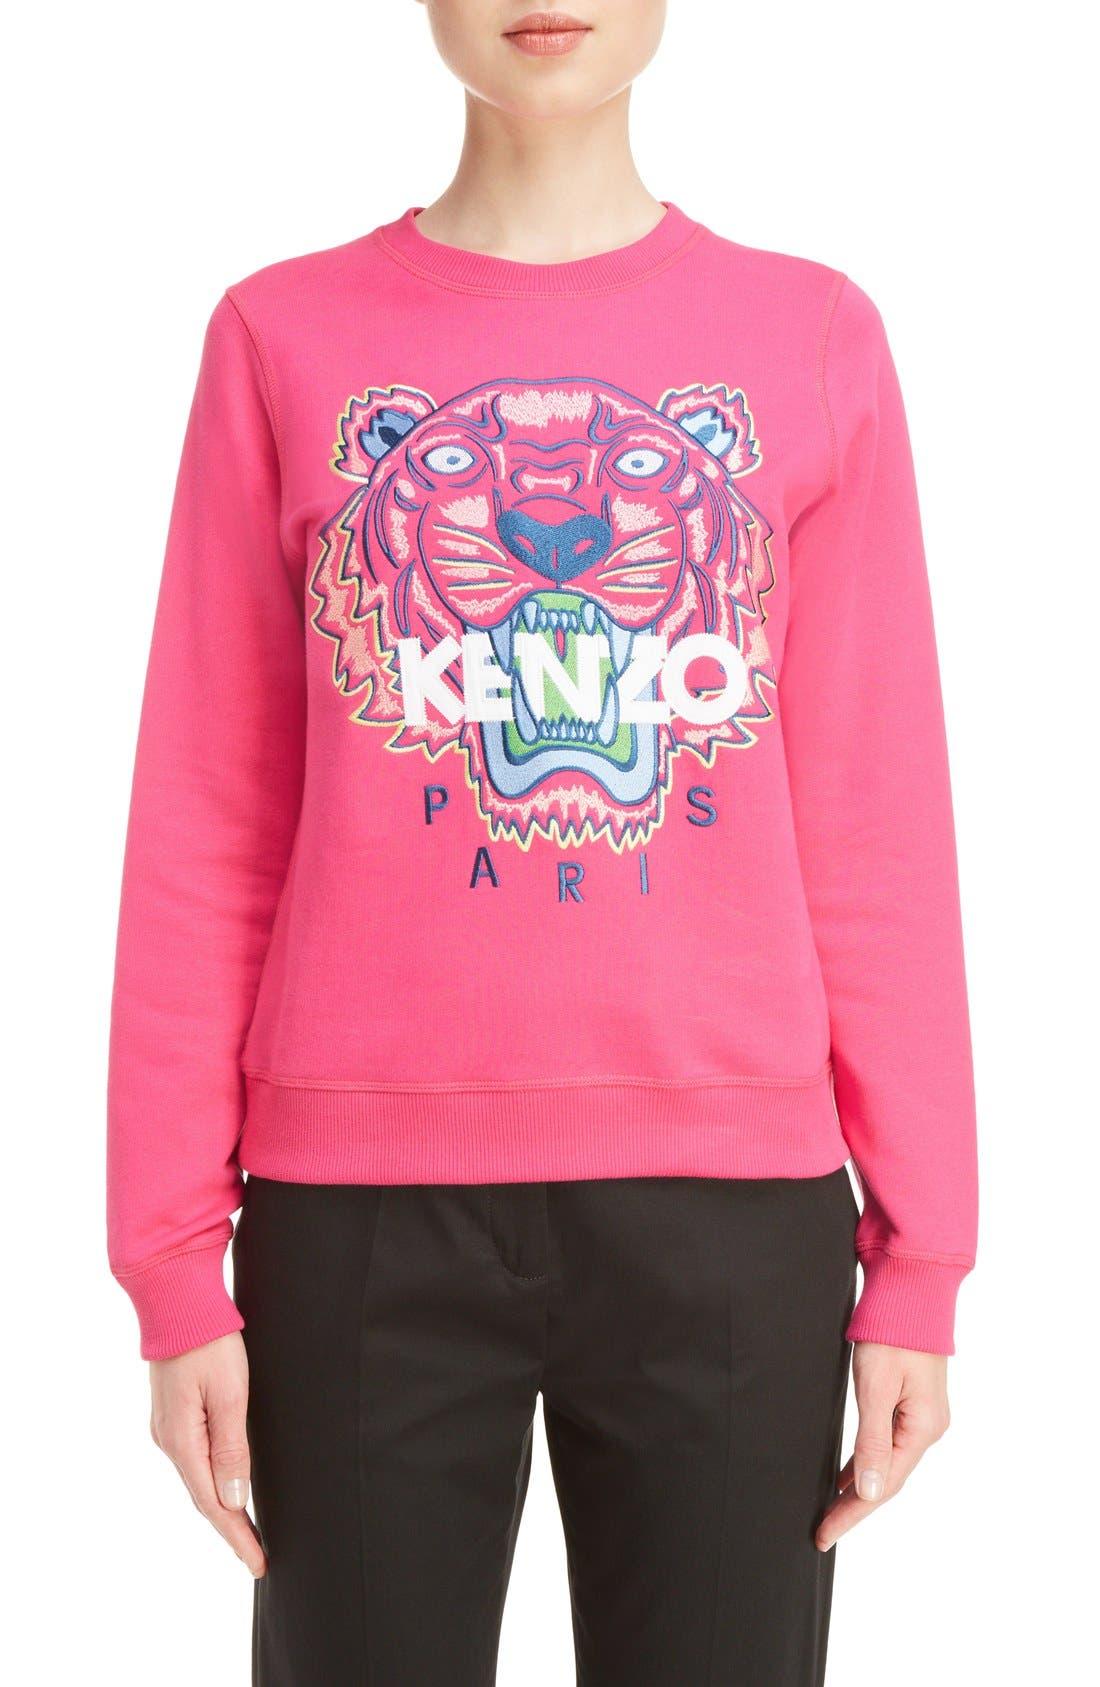 Alternate Image 1 Selected - KENZO Embroidered Tiger Cotton Sweatshirt